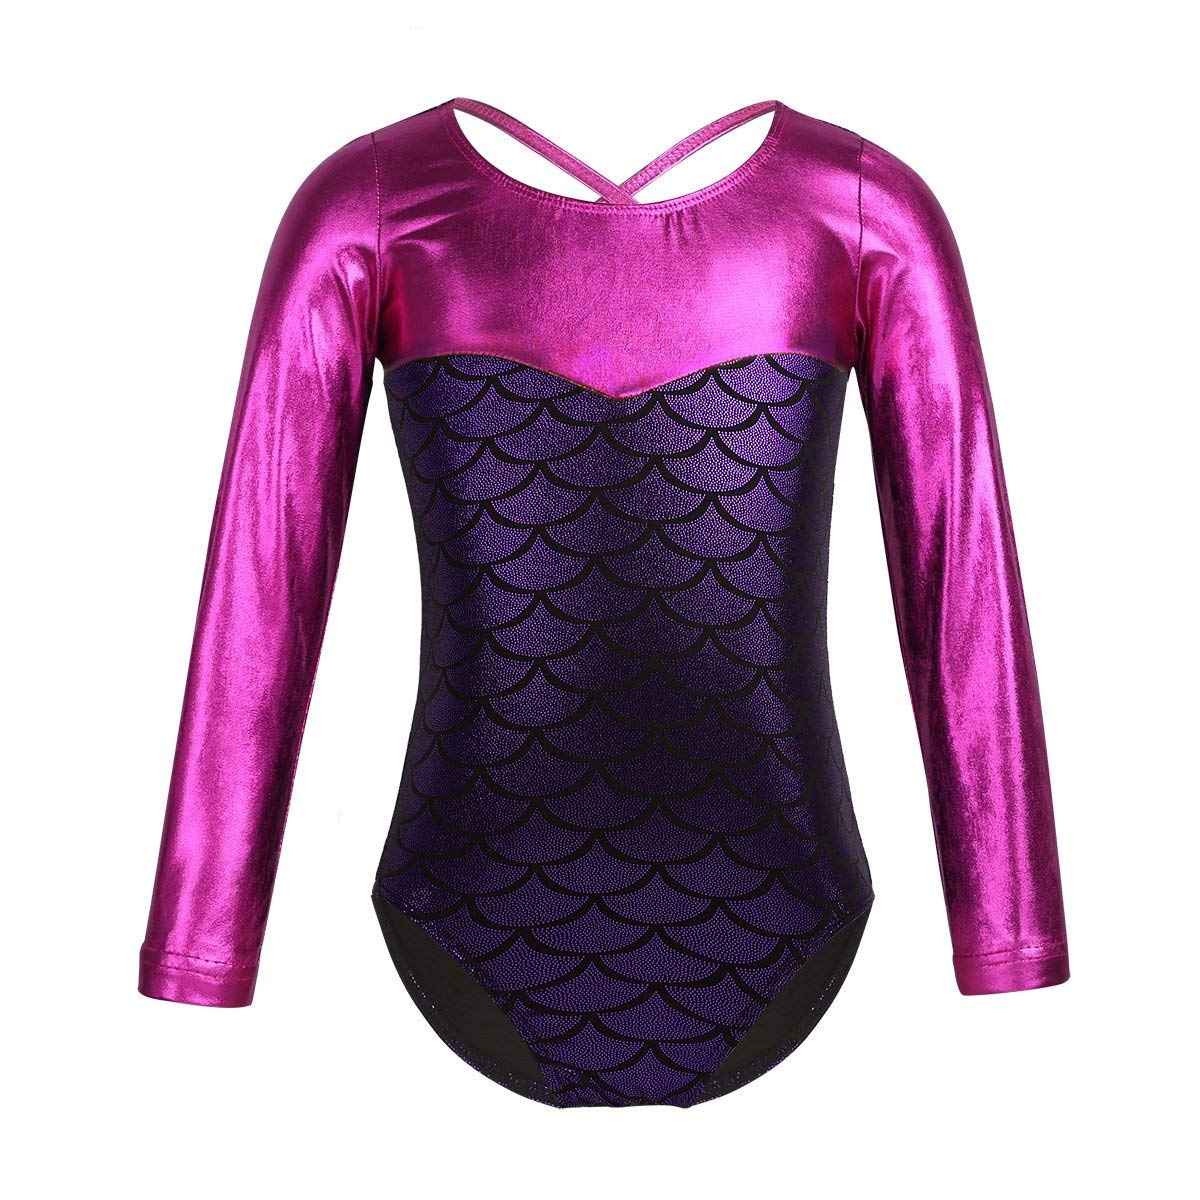 41798de5d2 Get Quotations · FEESHOW Kids Girls Mermaid Fish Scales Printed Gymnastic  Leotard Shiny Sparkle Ballet Dance Costumes